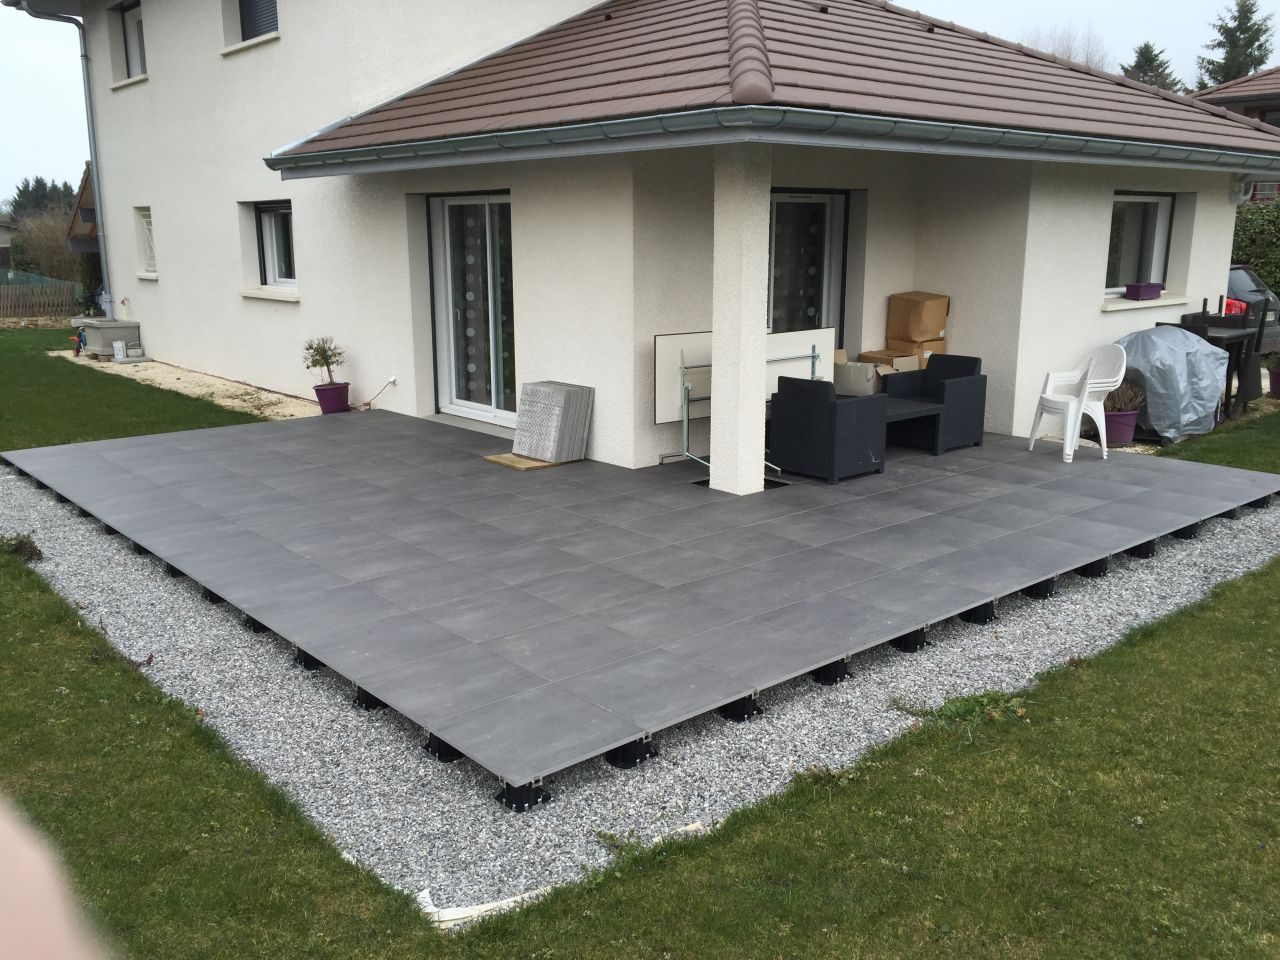 Pose carrelage pose carrelage ext rieur sur dalle b ton for Carrelage exterieur pose sur plot